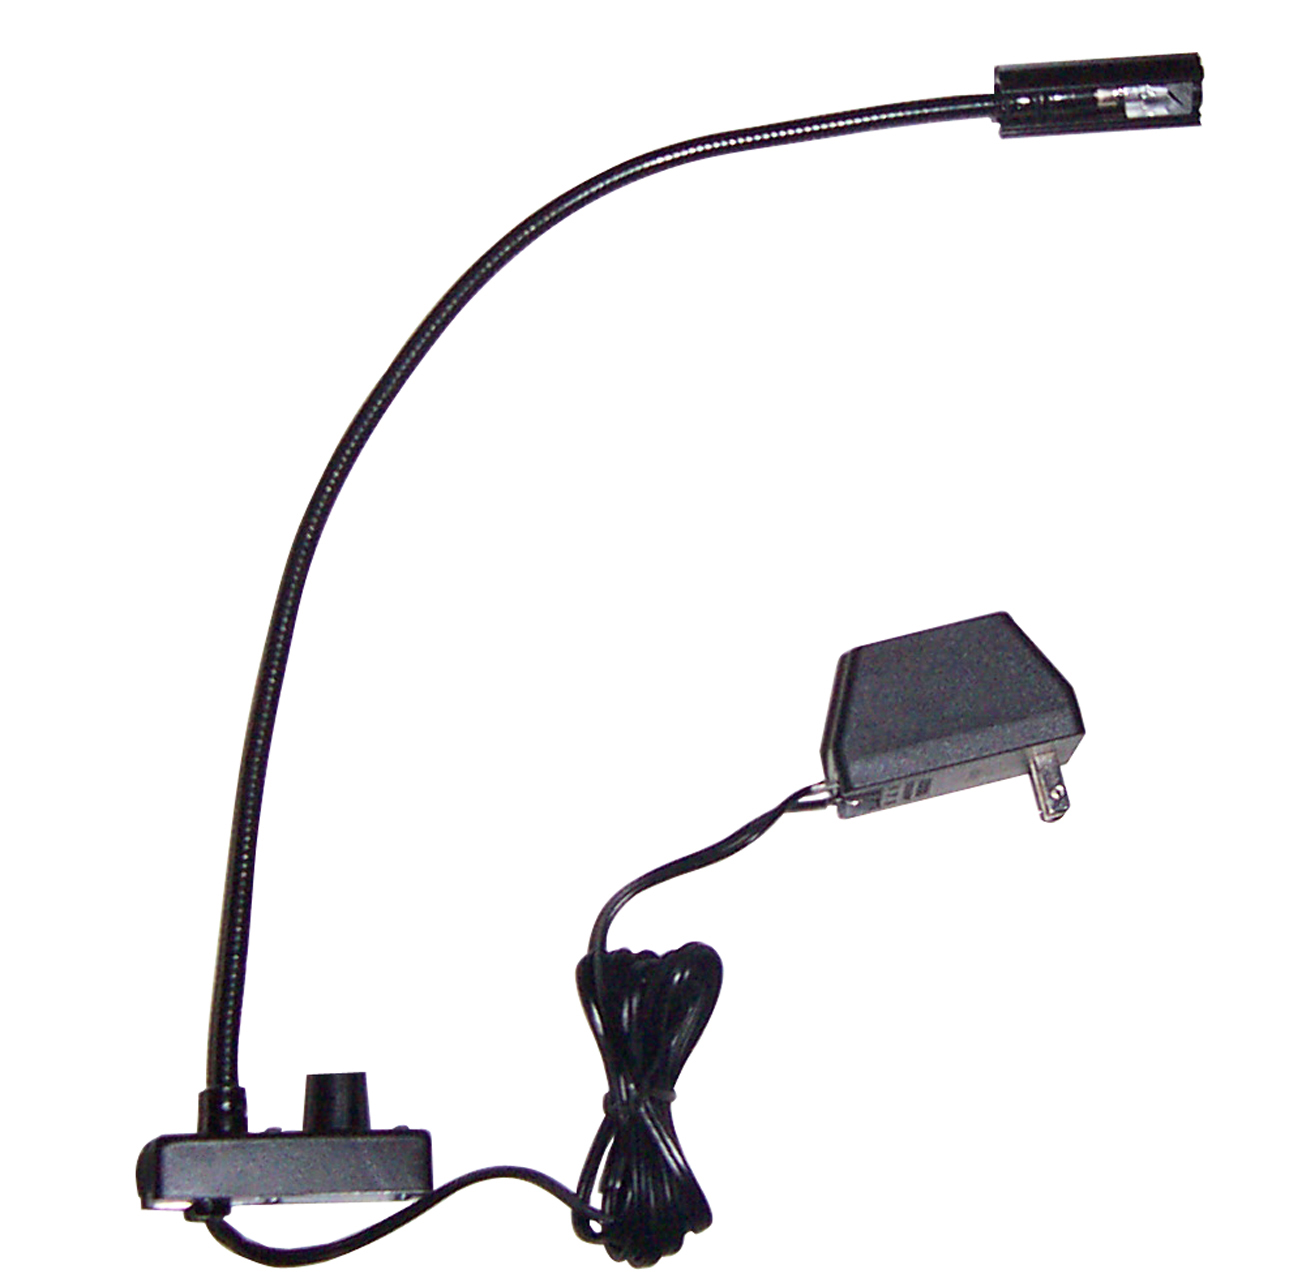 Amplivox S1110 Mountable Halogen Gooseneck Reading Lamp